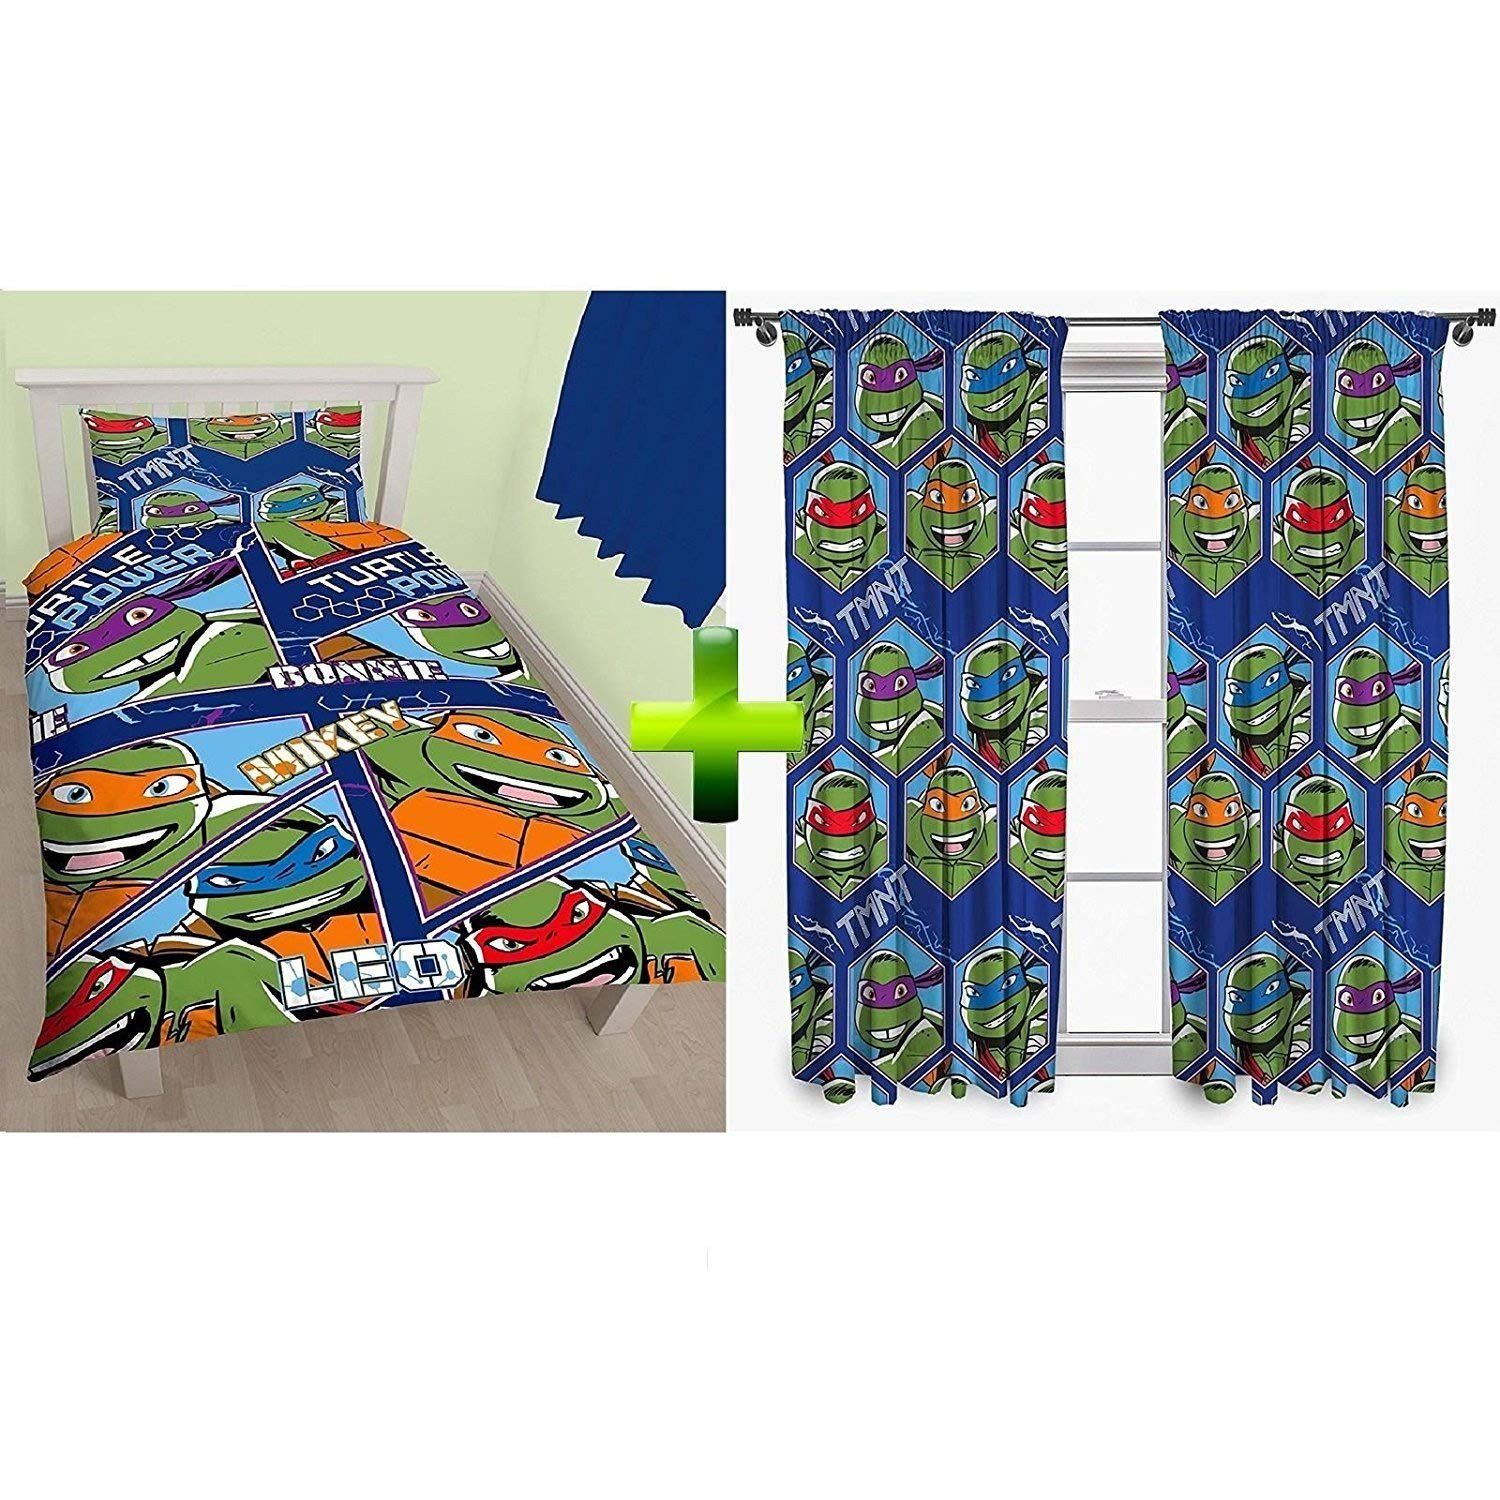 "Teenage Mutant Ninja Turtles Bedroom Set Awesome Teenage Mutant Ninja Turtles 66x54"" Curtains Tmnt Single Duvet Set Quilt Cover Bedding"